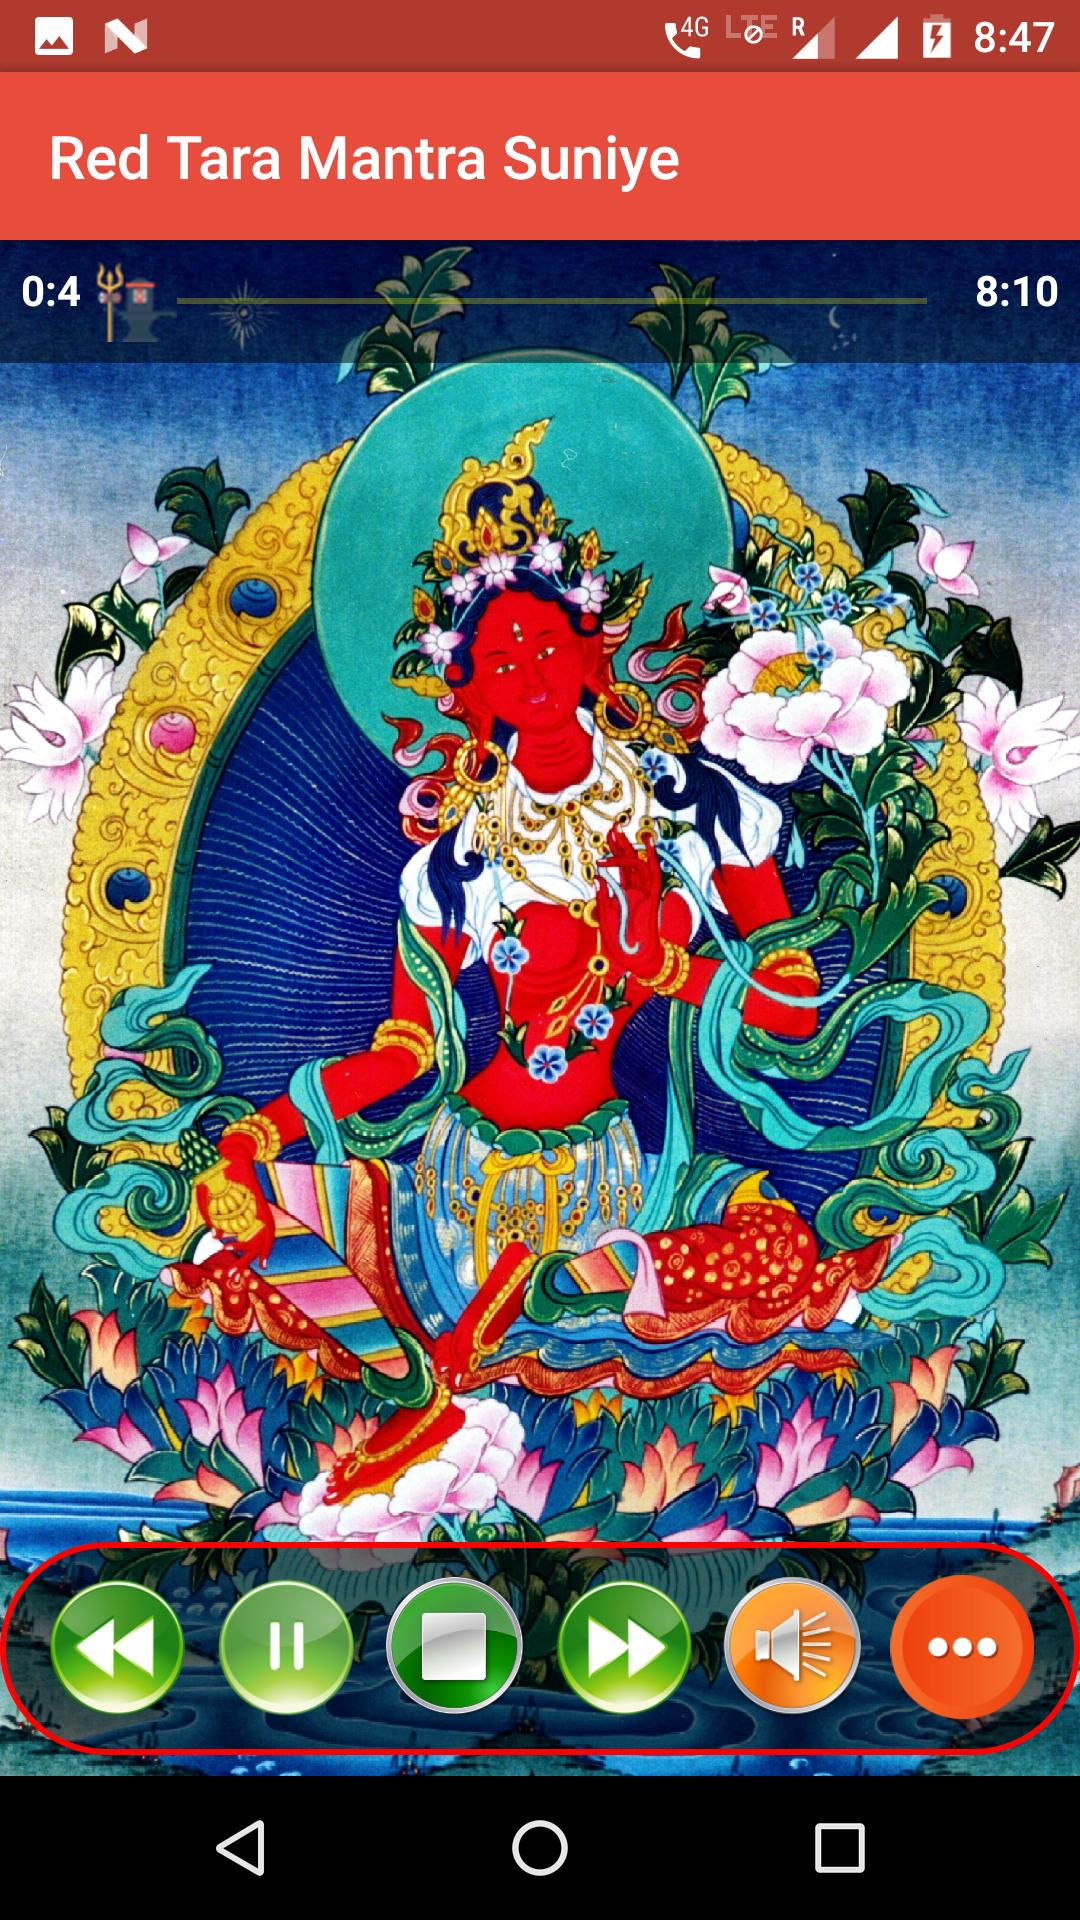 Red Tara Mantra Suniye for Android - APK Download